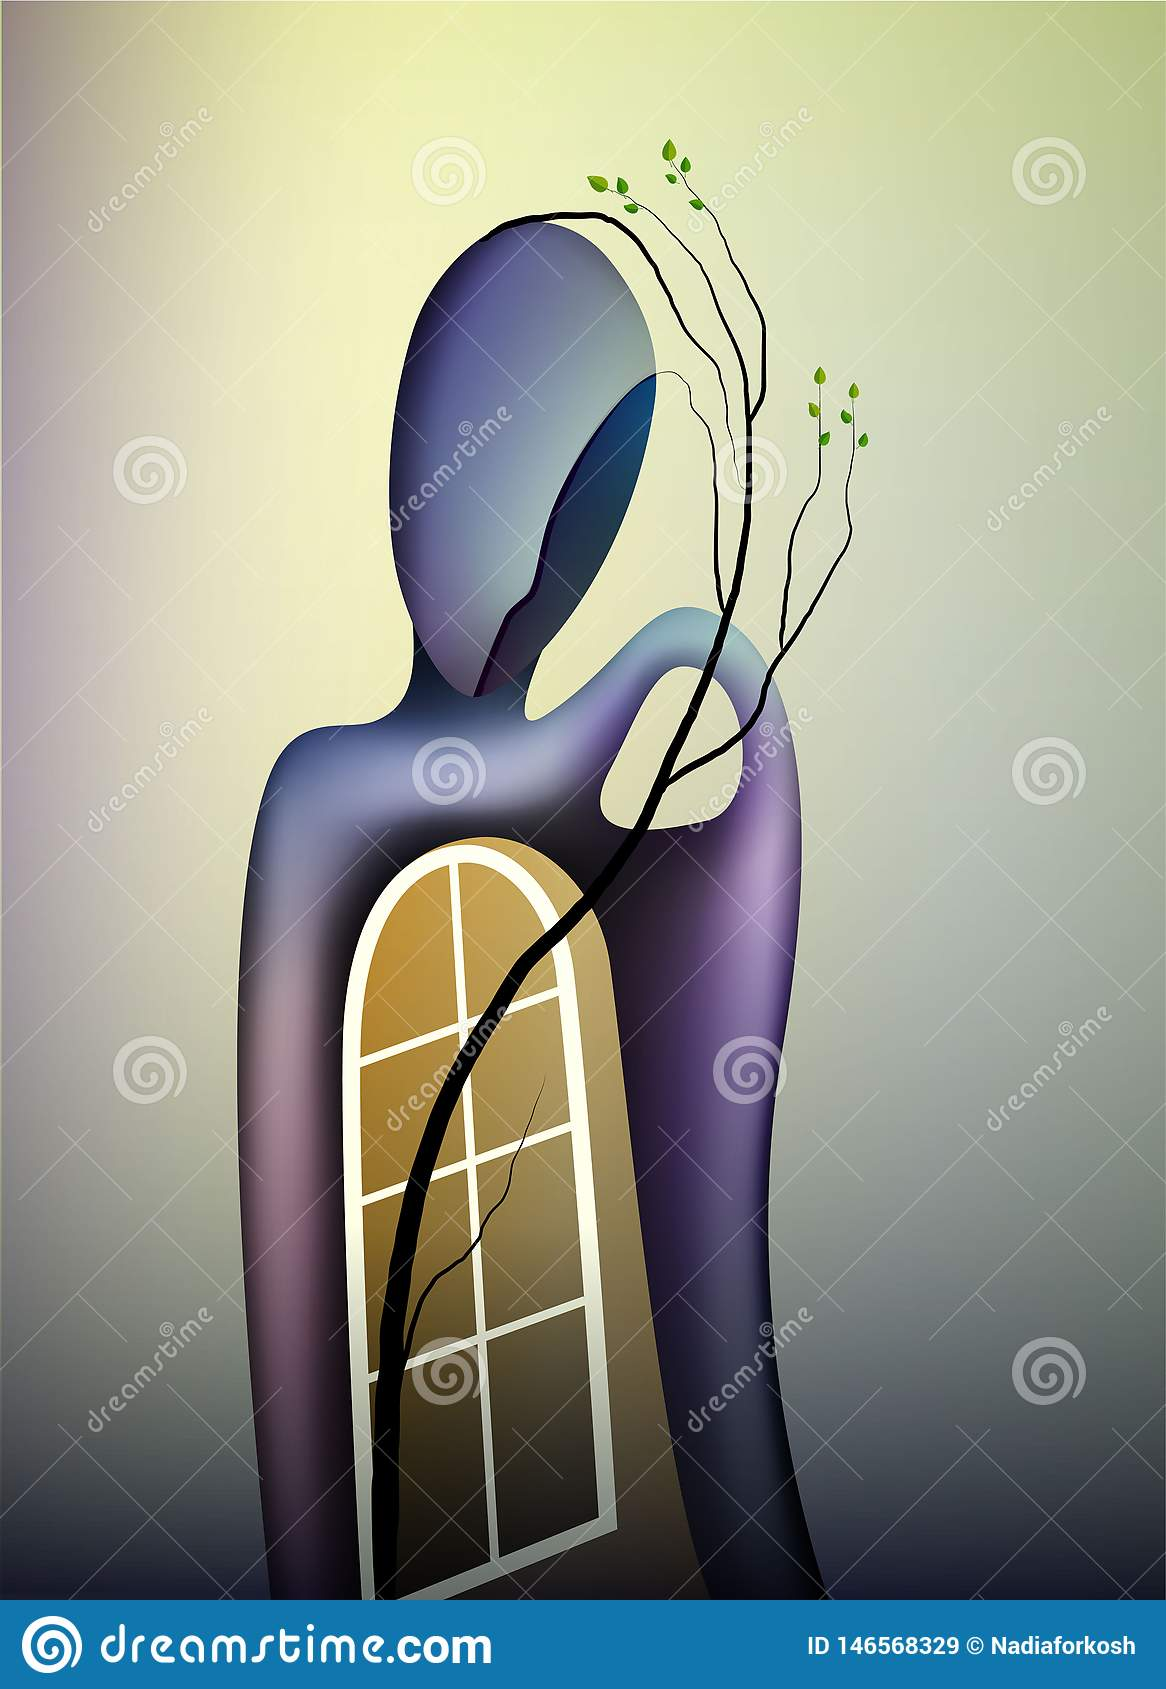 Spring in soul concept, shape of memories, man with open window and branch of tree growing inside, contemporary spring